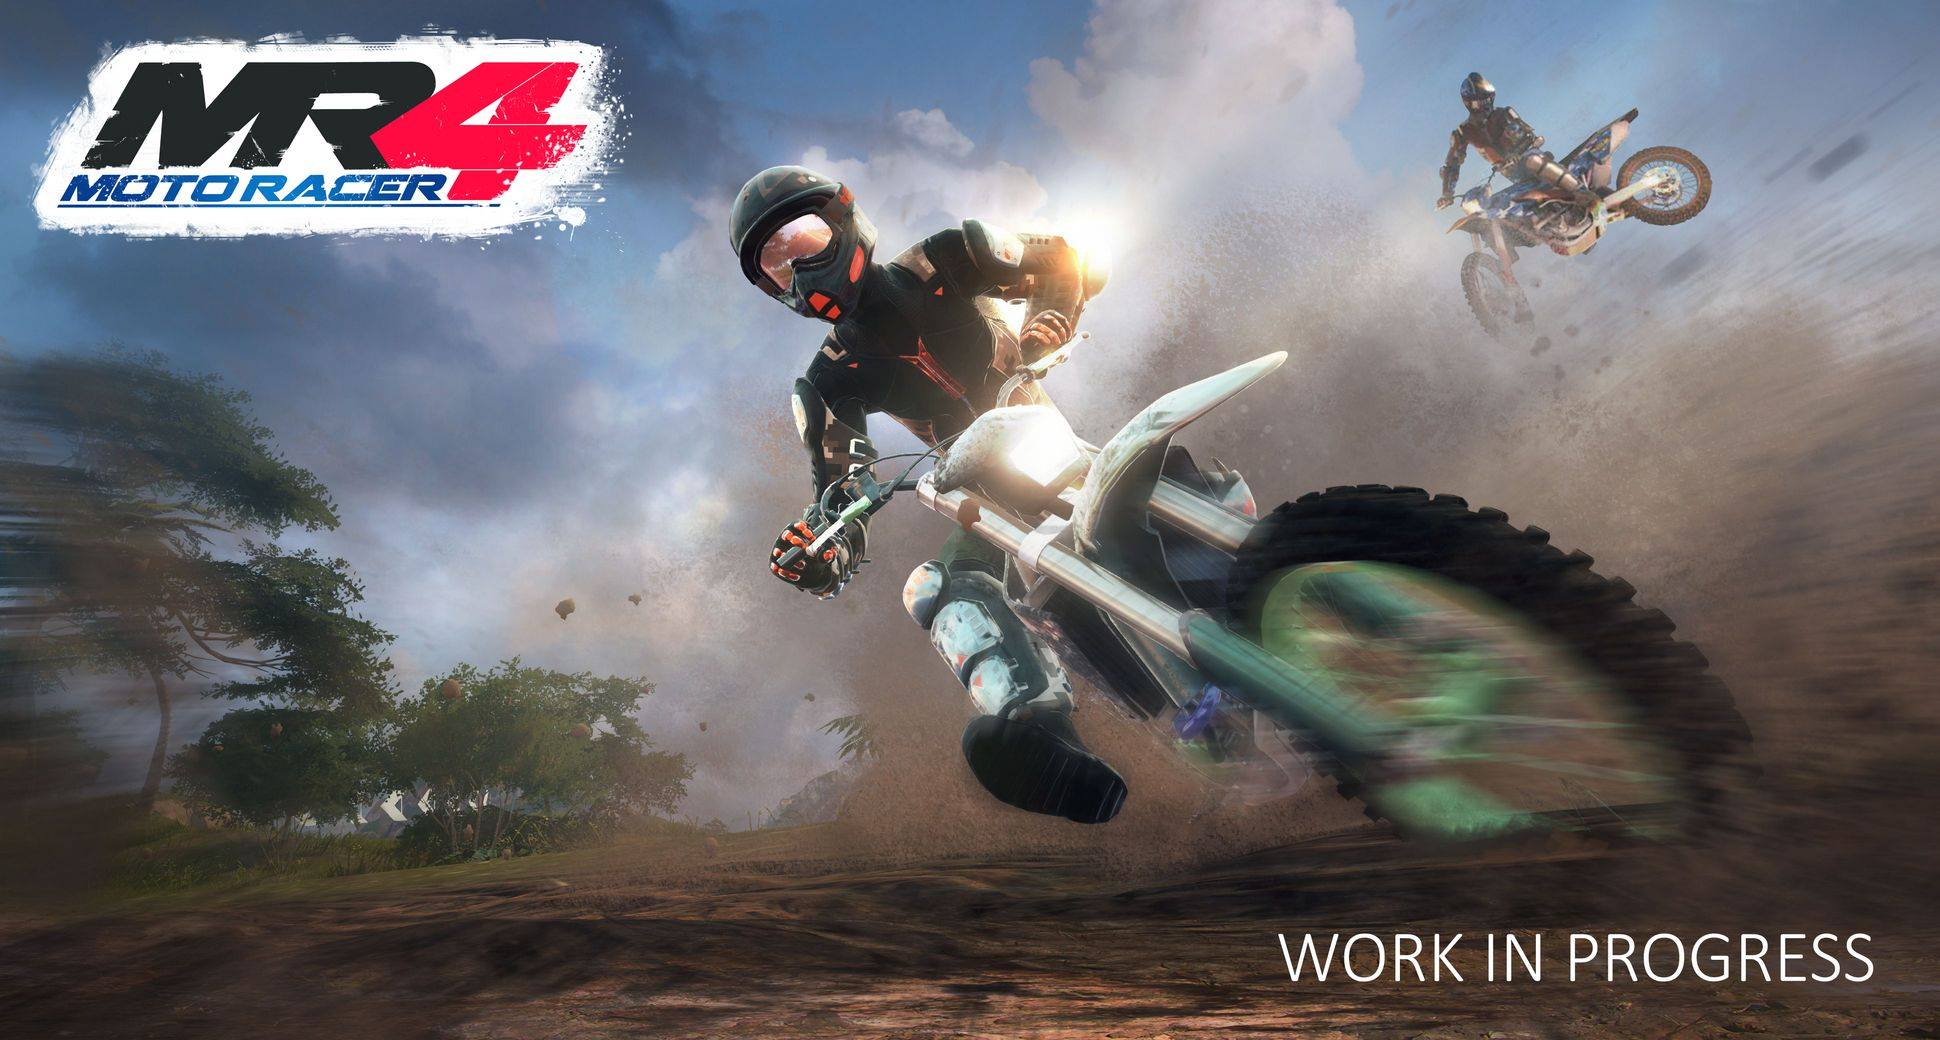 Moto Racer 4's VR is playable in two game modes at launch